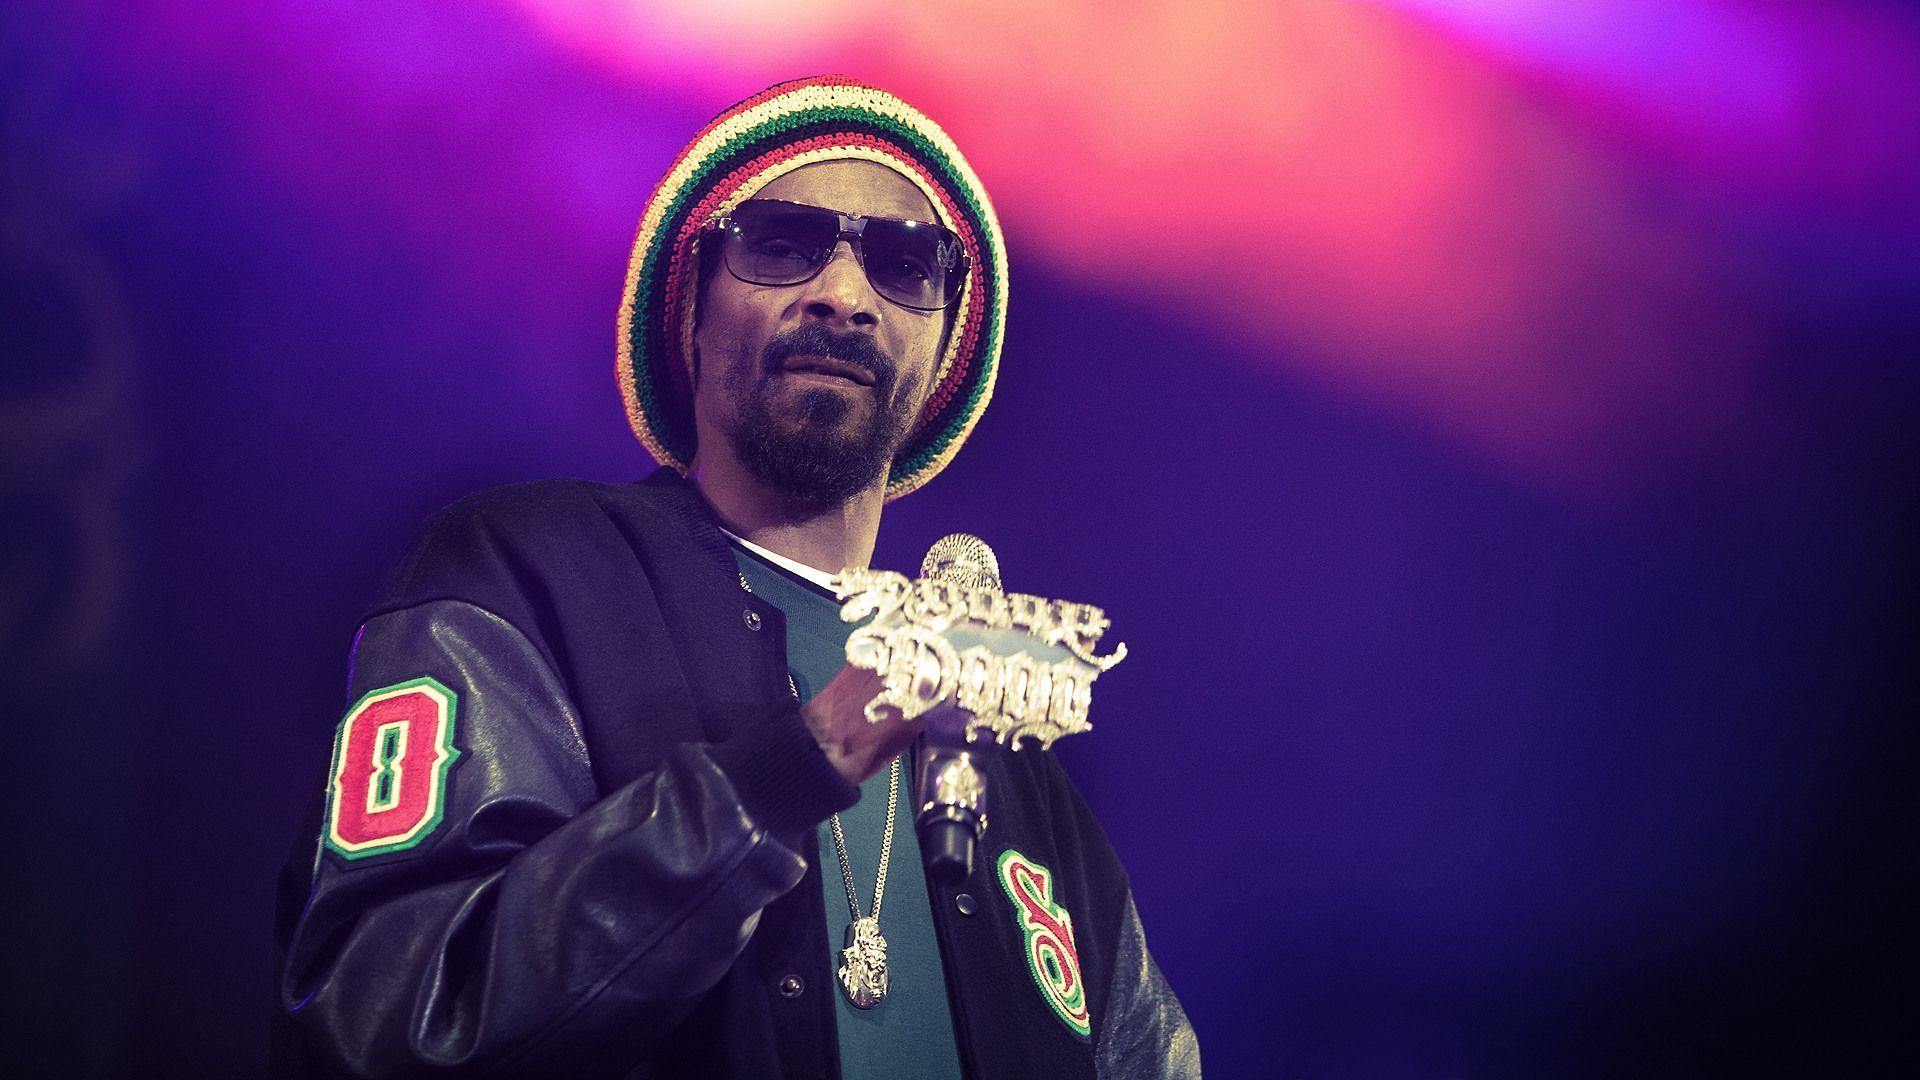 Snoop Dogg Wallpapers Wallpaper Cave